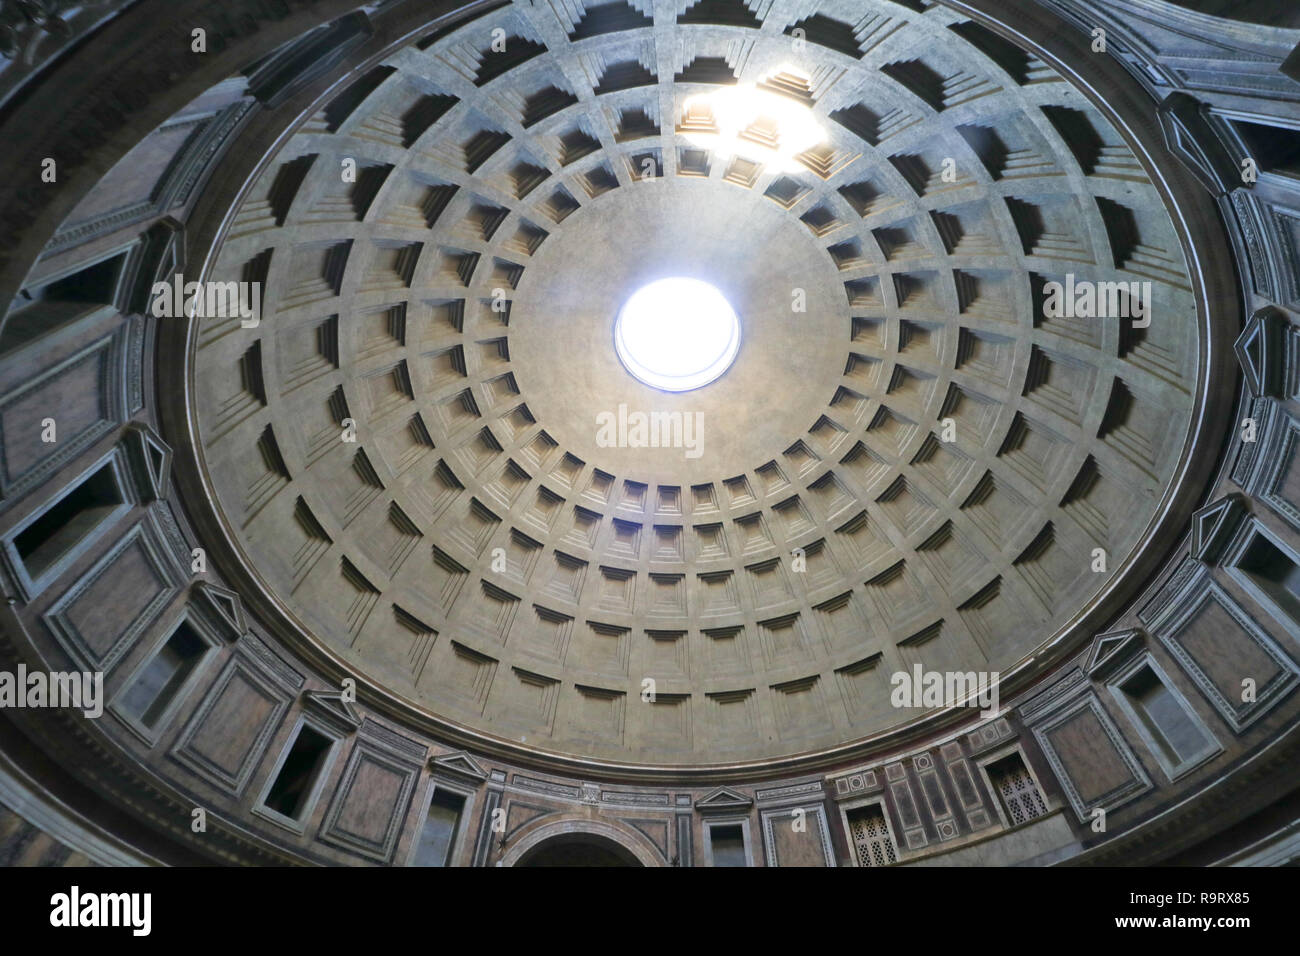 Rome, Italy. 28th Dec, 2018. Italian culture minister Alberto Bonisoli has scrapped plans by the previous government to charge visitors an entry fee into the Pantheon, one of the most visited sites in the city of Rome which attracted 7.4 million visitors in 2017. Former culture minister Dario Franceschini had planned to charge a €2 entry fee to visitors of the Pantheon, following an agreement between the culture ministry and the Rome vicariate Credit: amer ghazzal/Alamy Live News Stock Photo